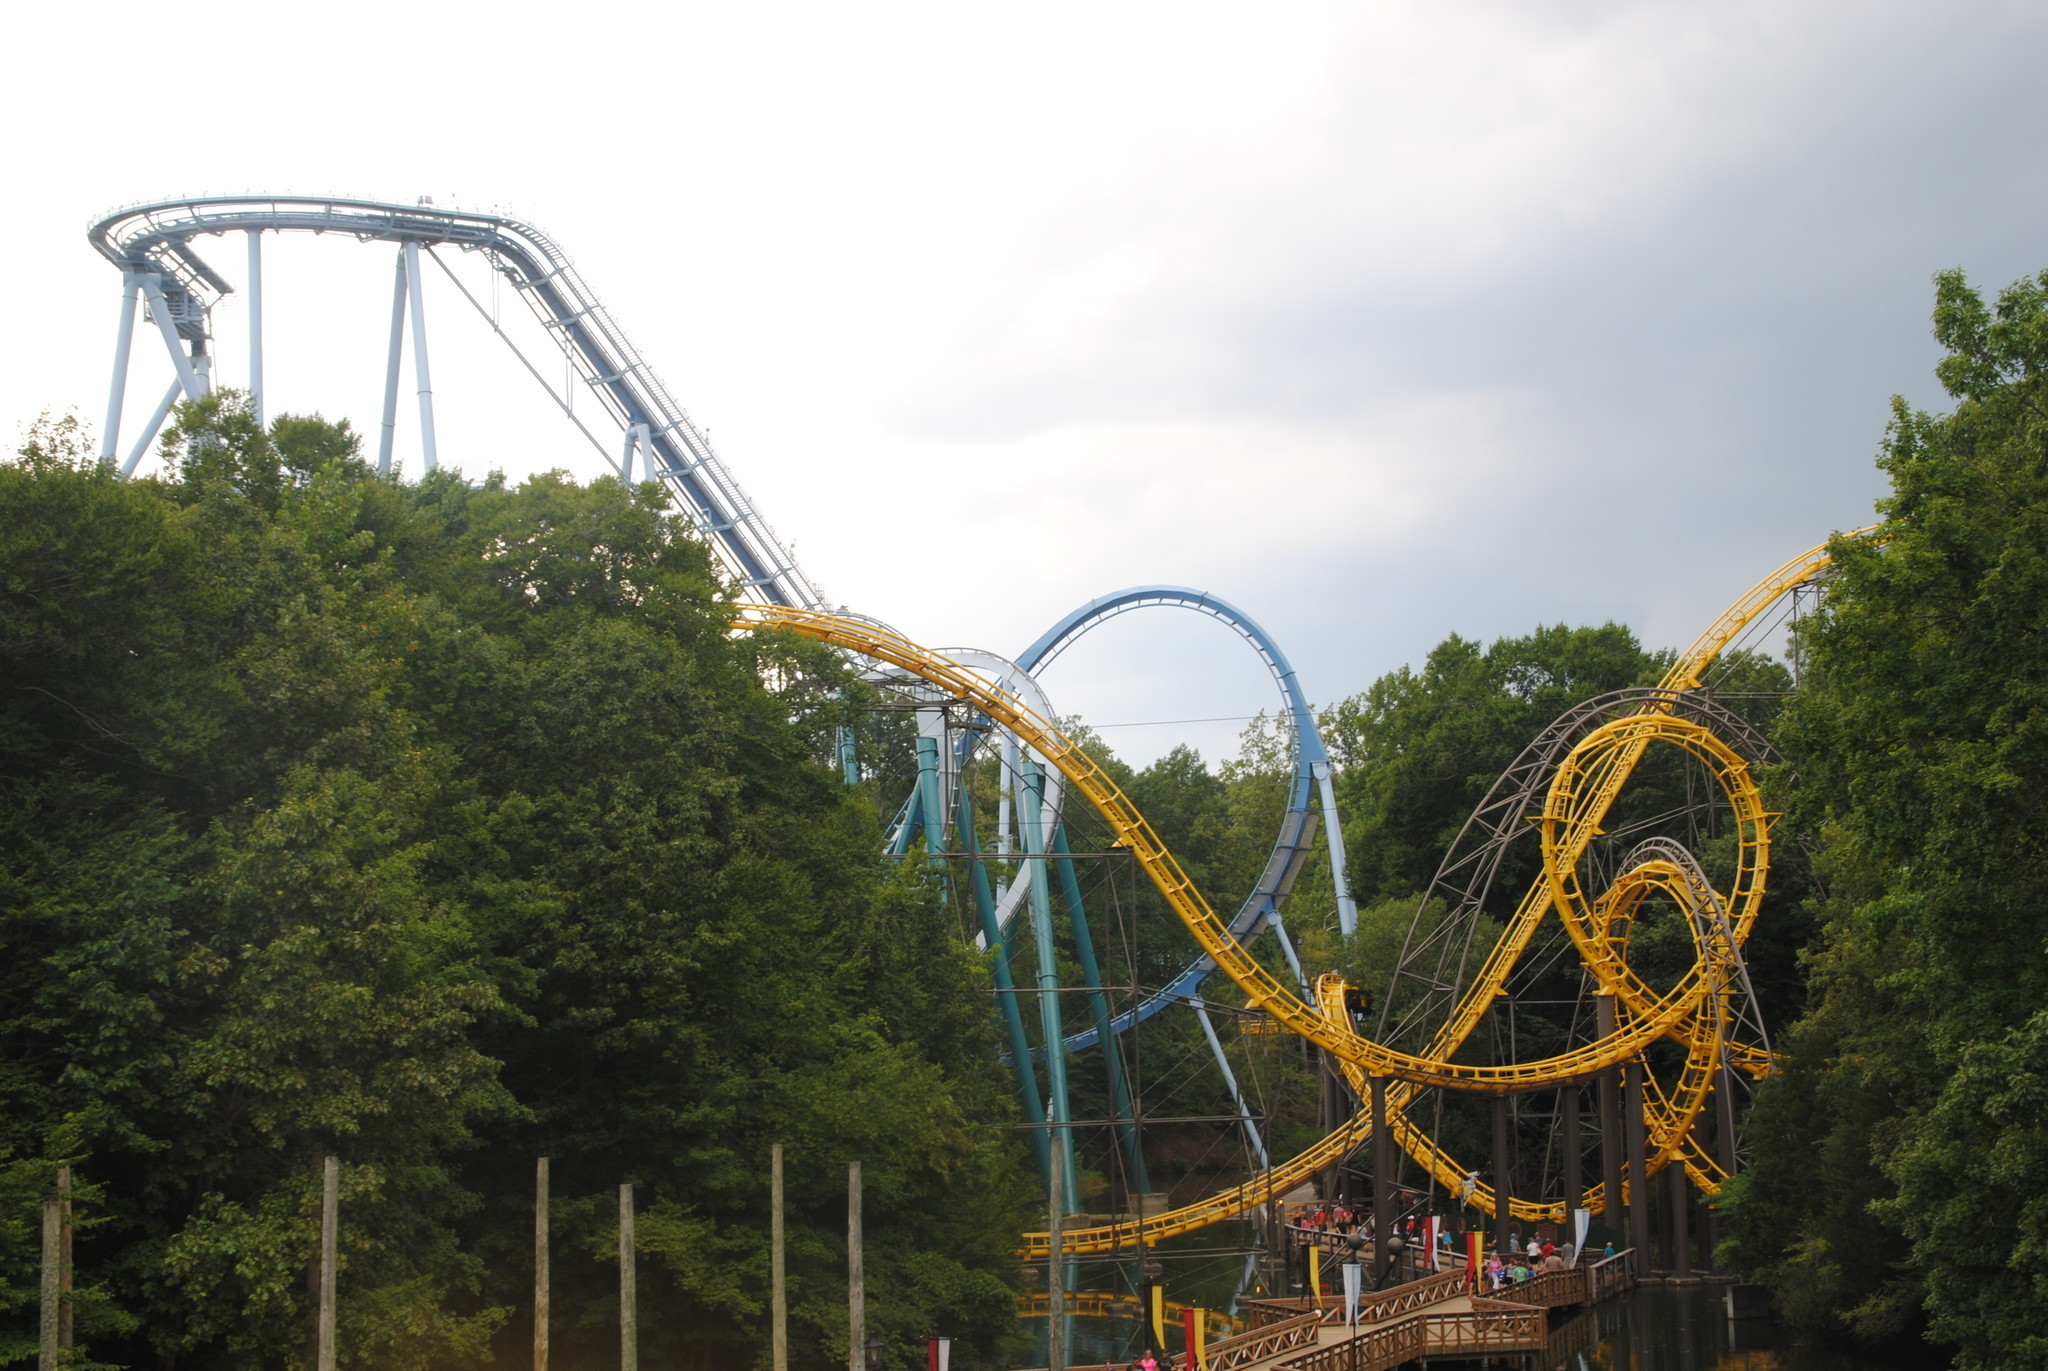 Riders Stuck On Roller Coaster Removed Safely At Busch Gardens Williamsburg Daily Press